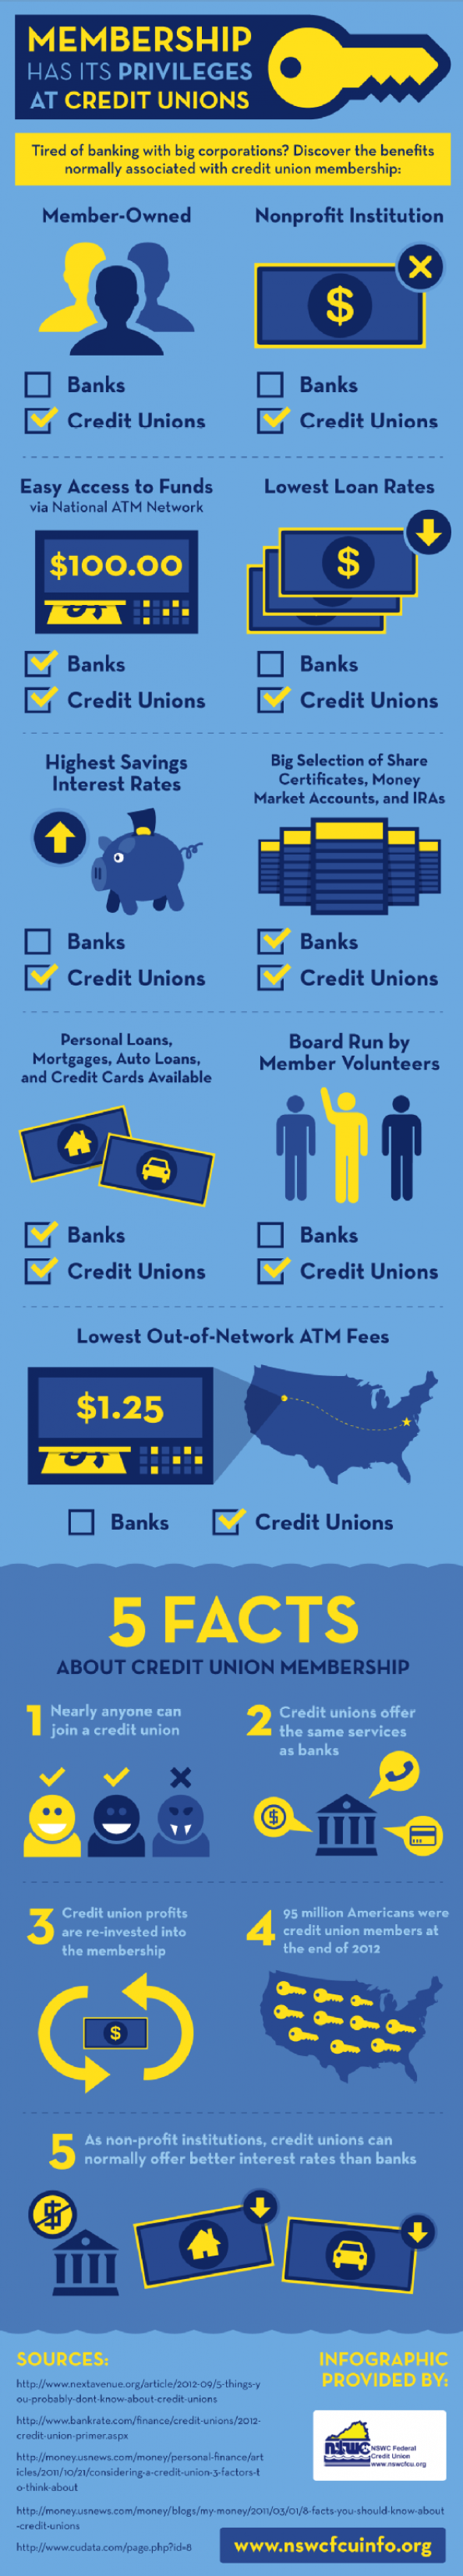 Membership Has Its Privileges At Credit Unions Visual Ly Credit Union Marketing Credit Union Credit Unions Vs Banks